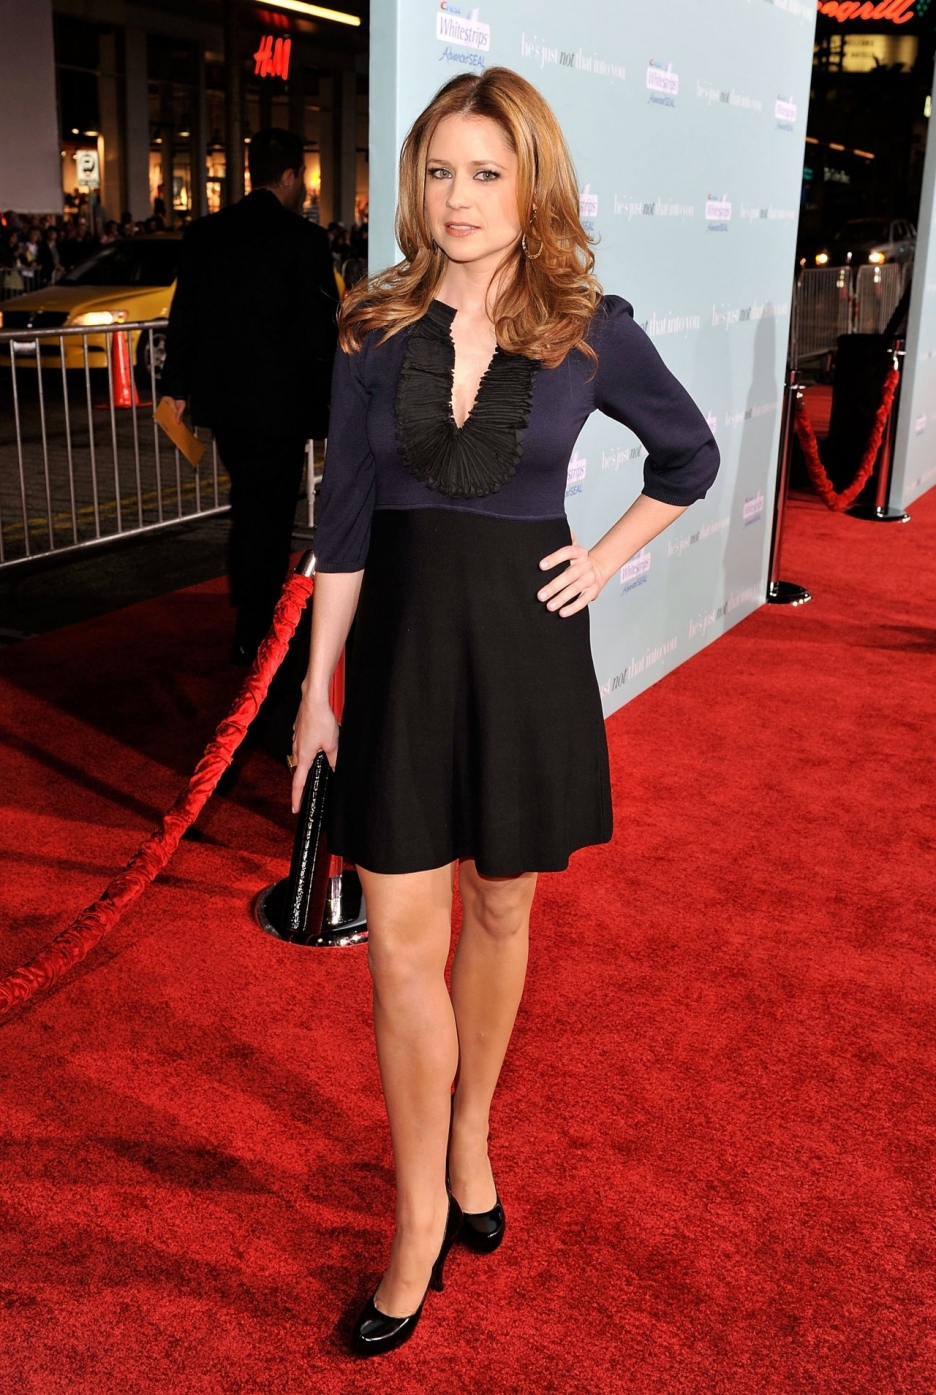 Jenna Fischer Hot Photos, Sexy Images, Videos